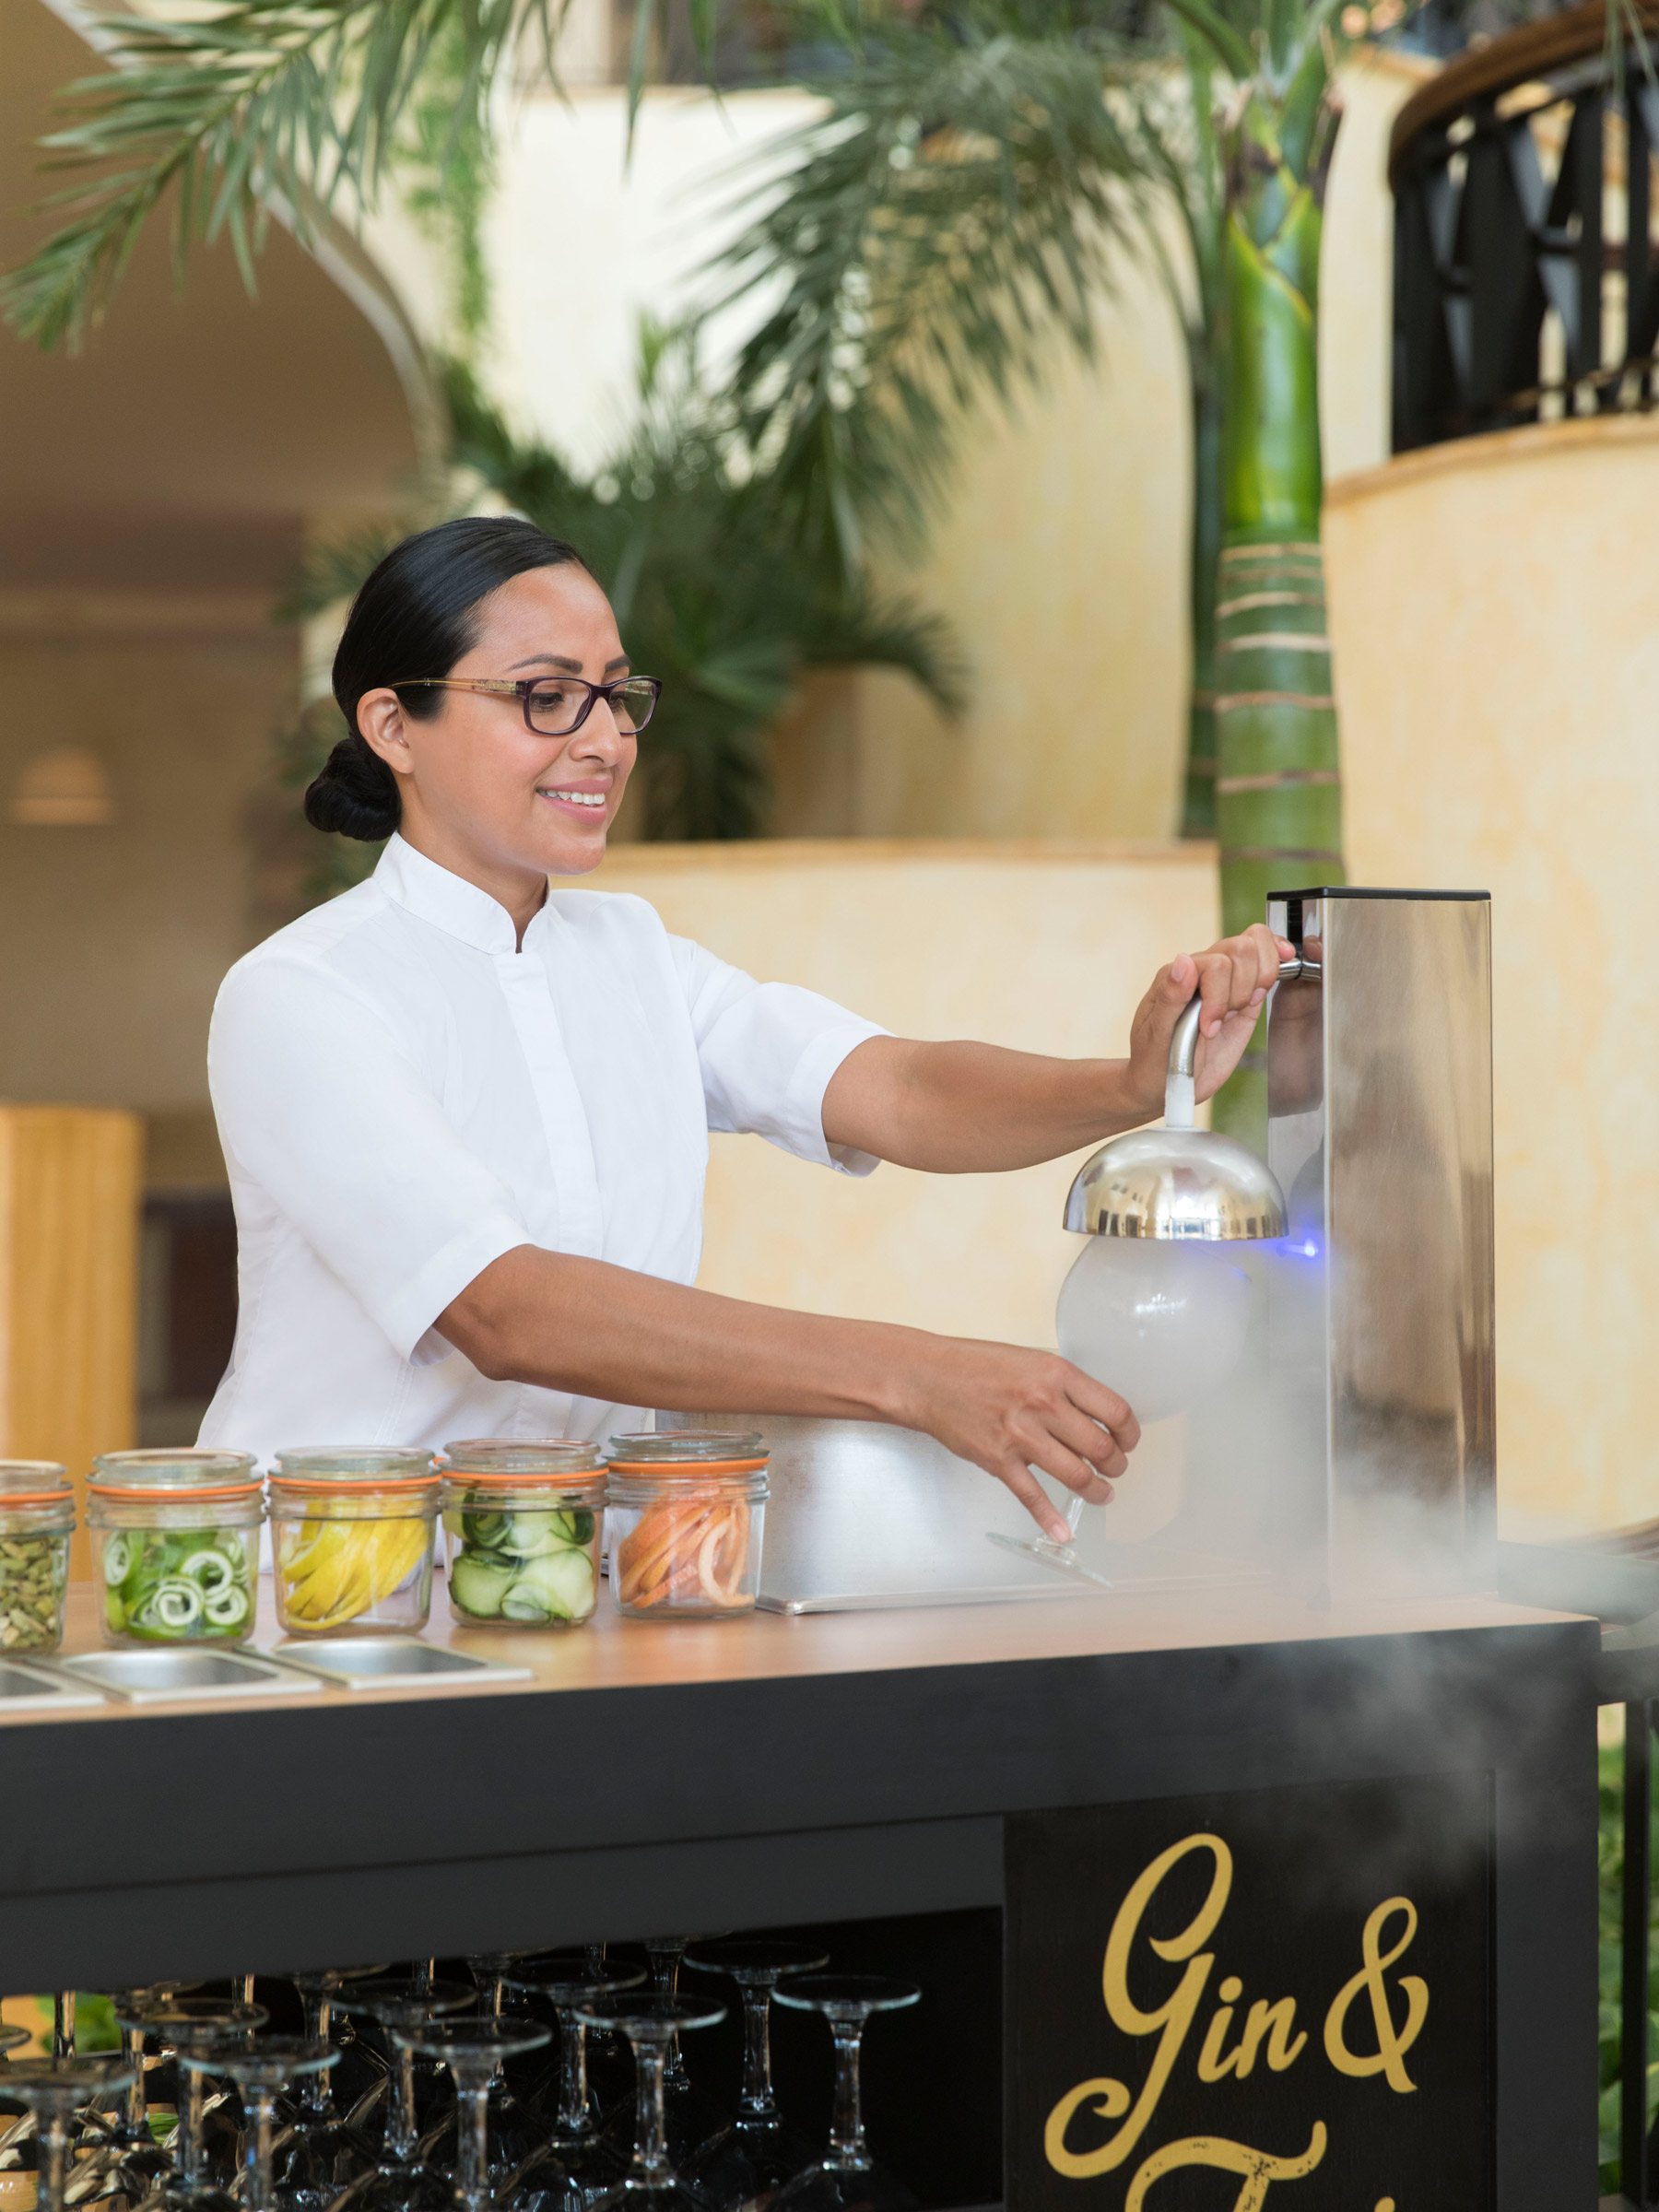 Cancun Luxury Resort Gin and Tonic Bar